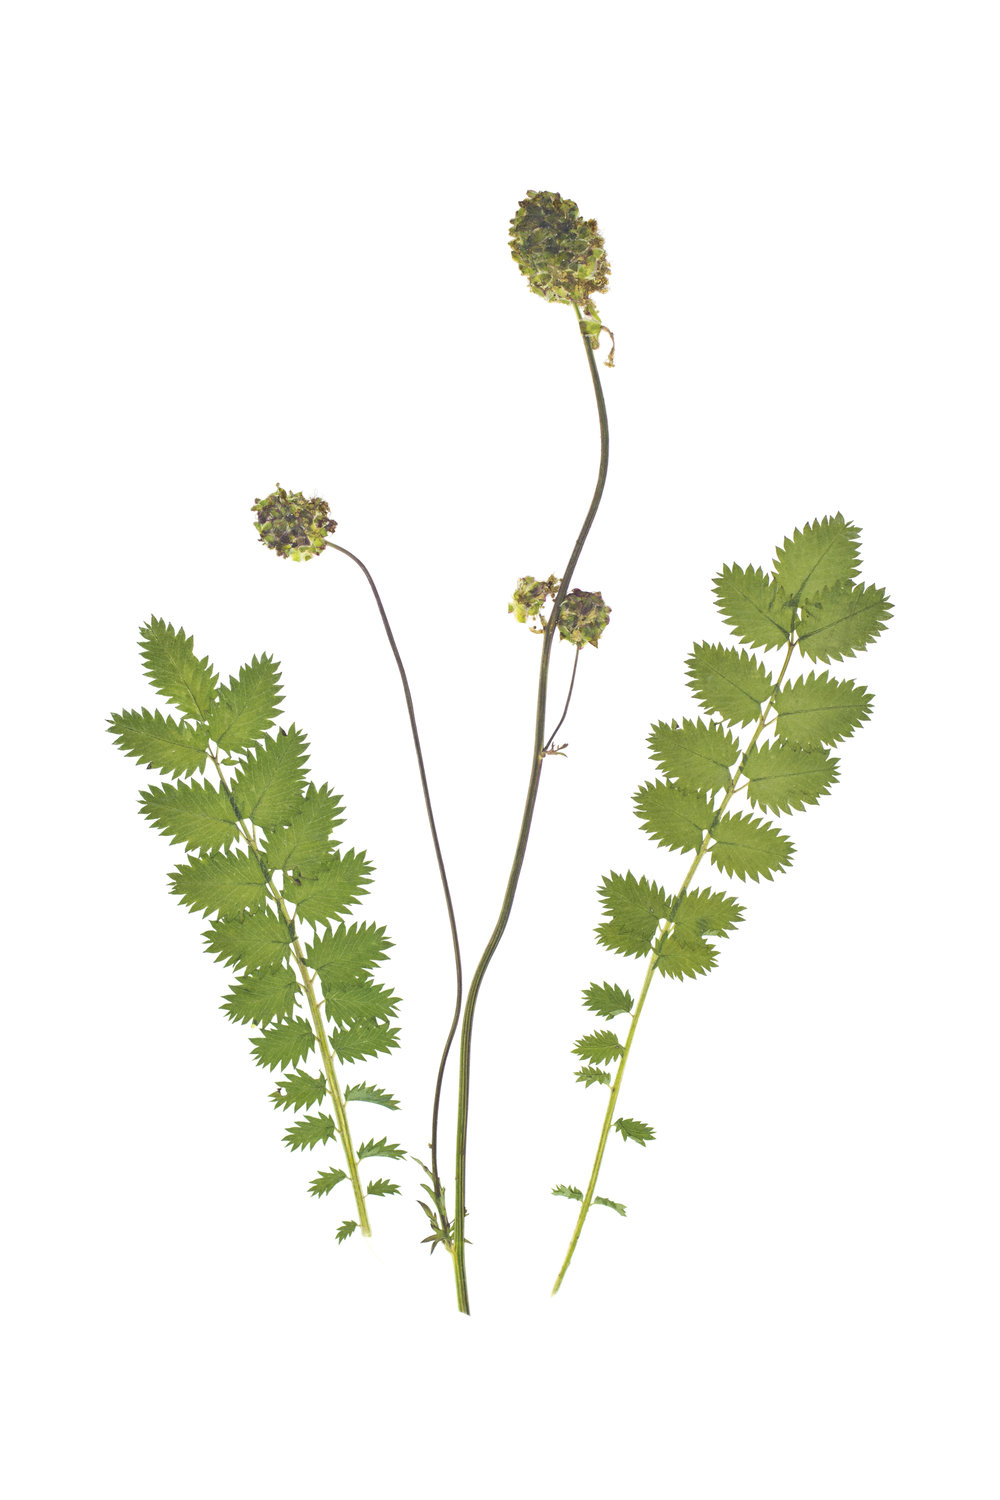 Salad Burnet / Sanguisorba minor